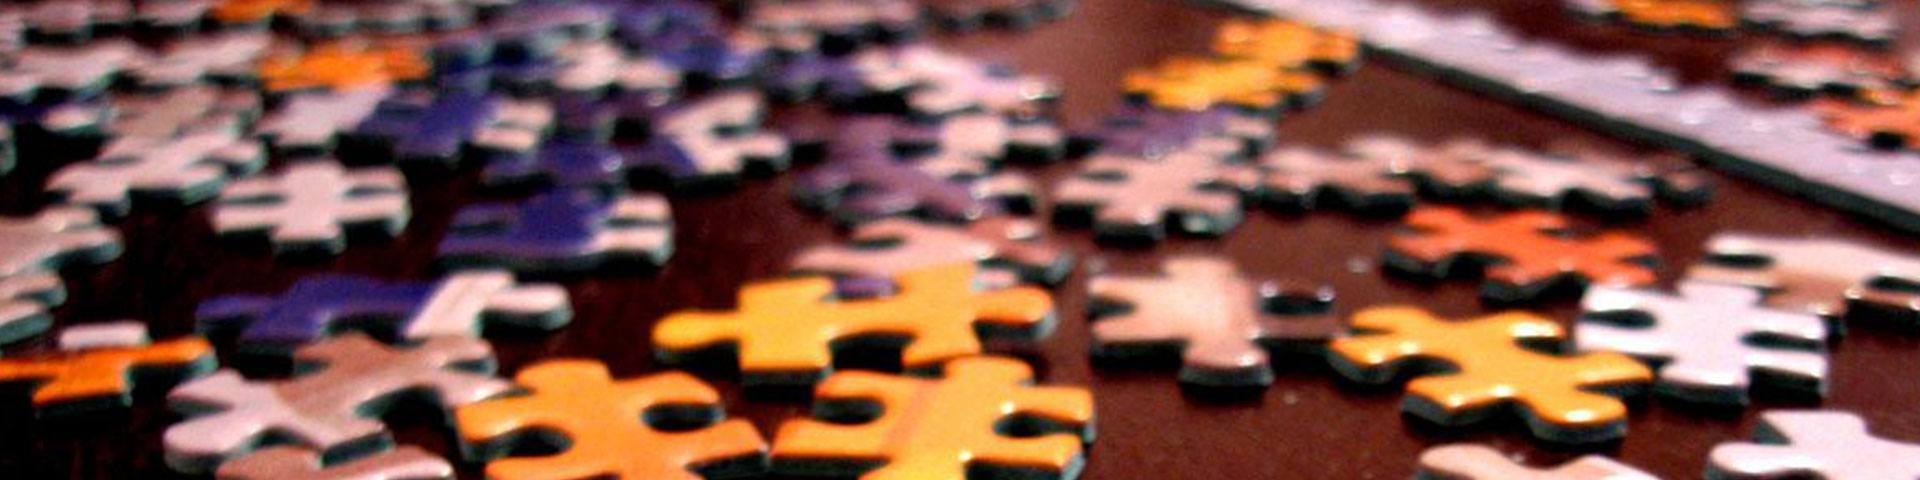 puzzle pieces as a loose metaphor for roadmap